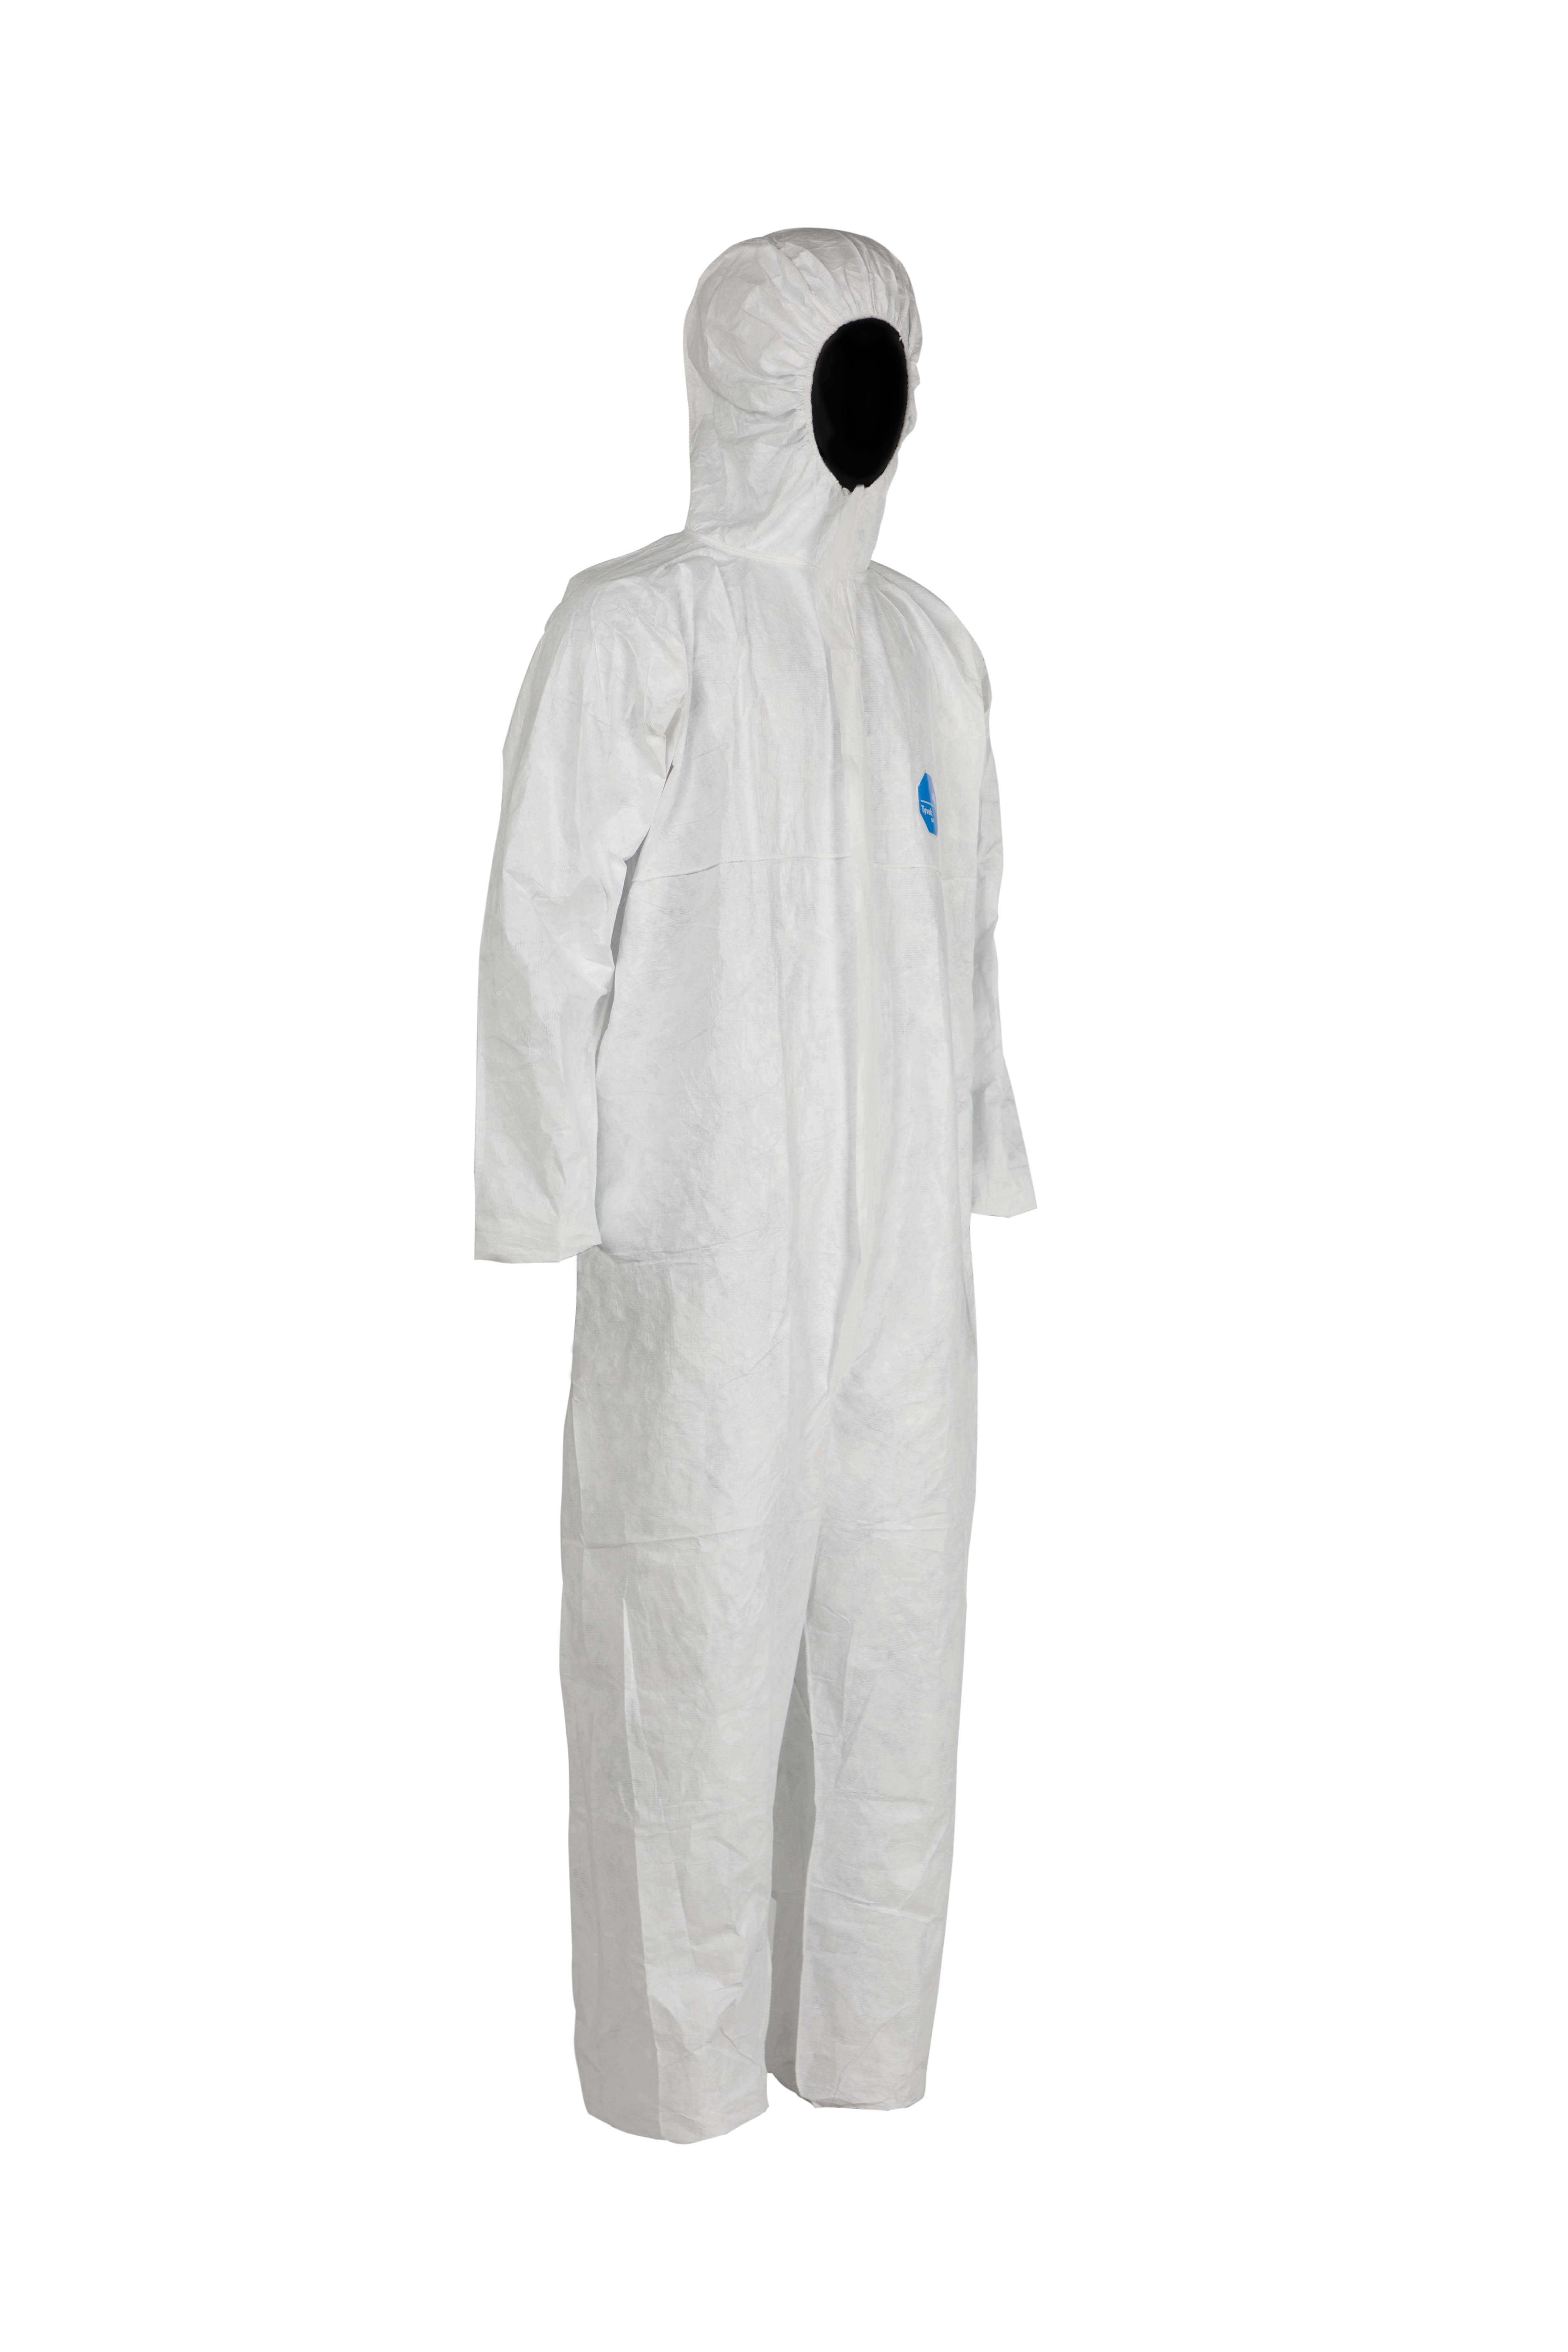 Robust yet Lightweight Type 5-B and 6-B White Size L DuPont Tyvek 500 Xpert Category III Chemical Protective Clothing with Hood 100 Pcs